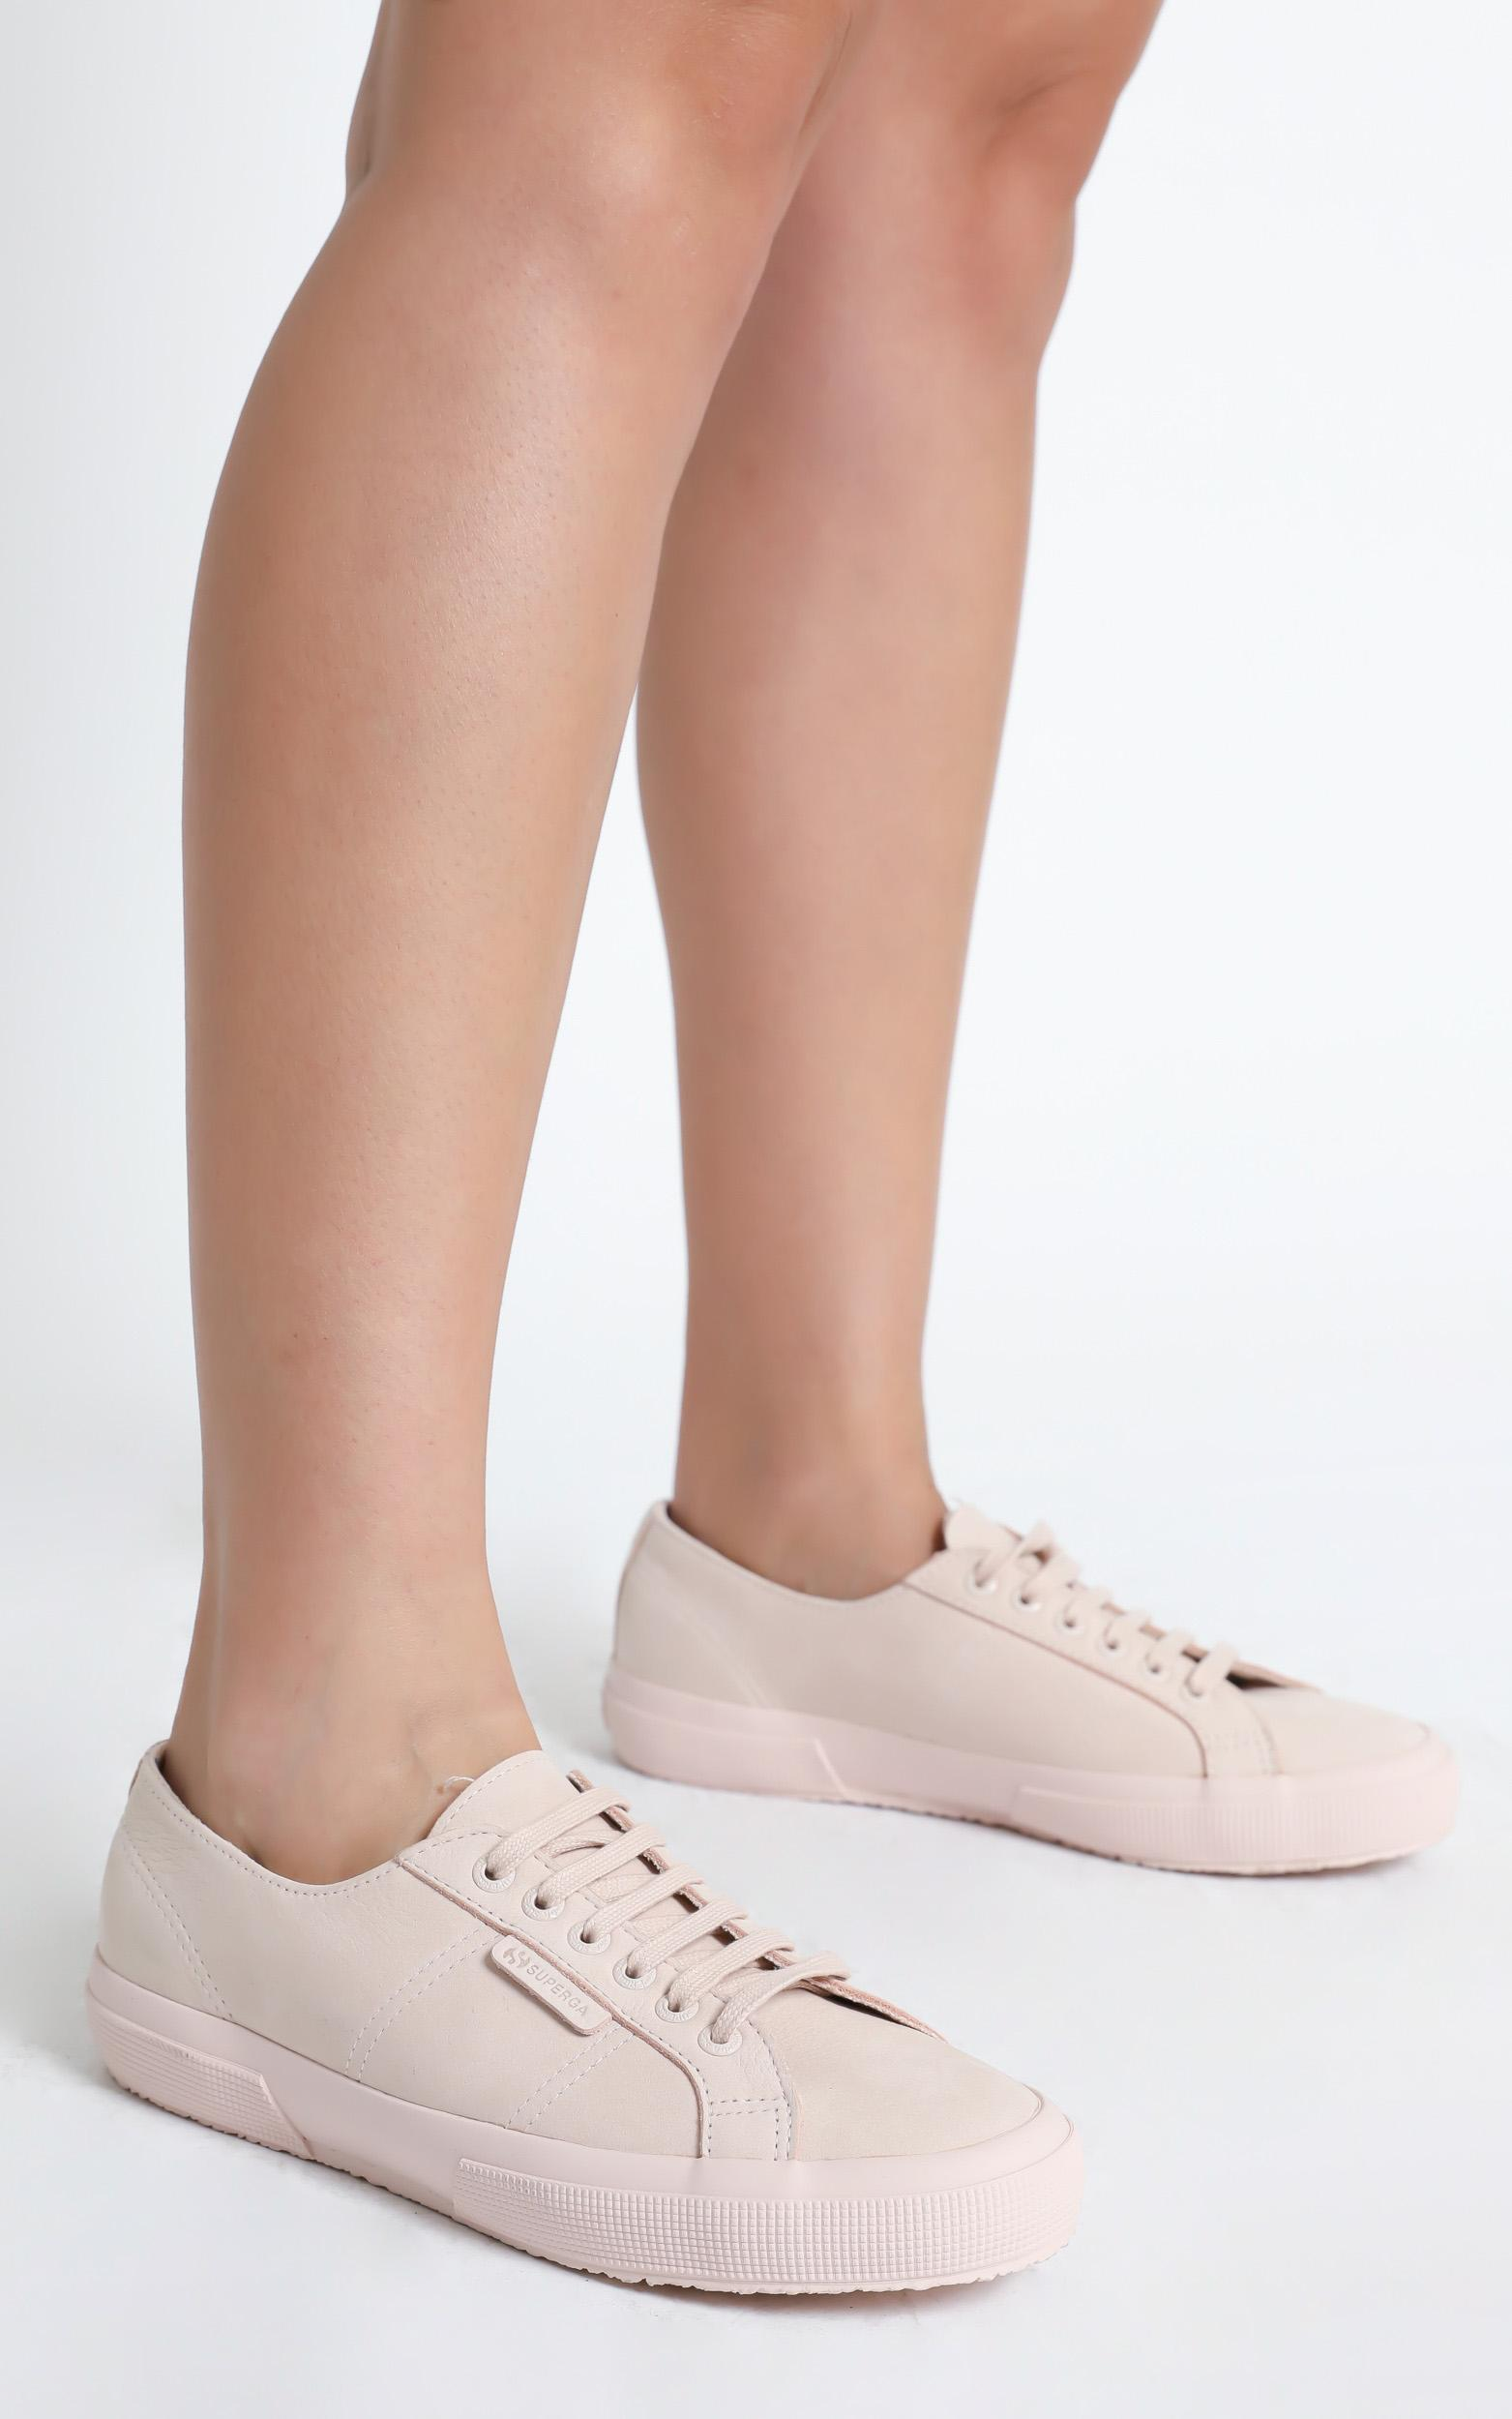 Superga - 2750 Buttersoft Leather Sneaker in tonal pink peach blush - 5, Blush, hi-res image number null